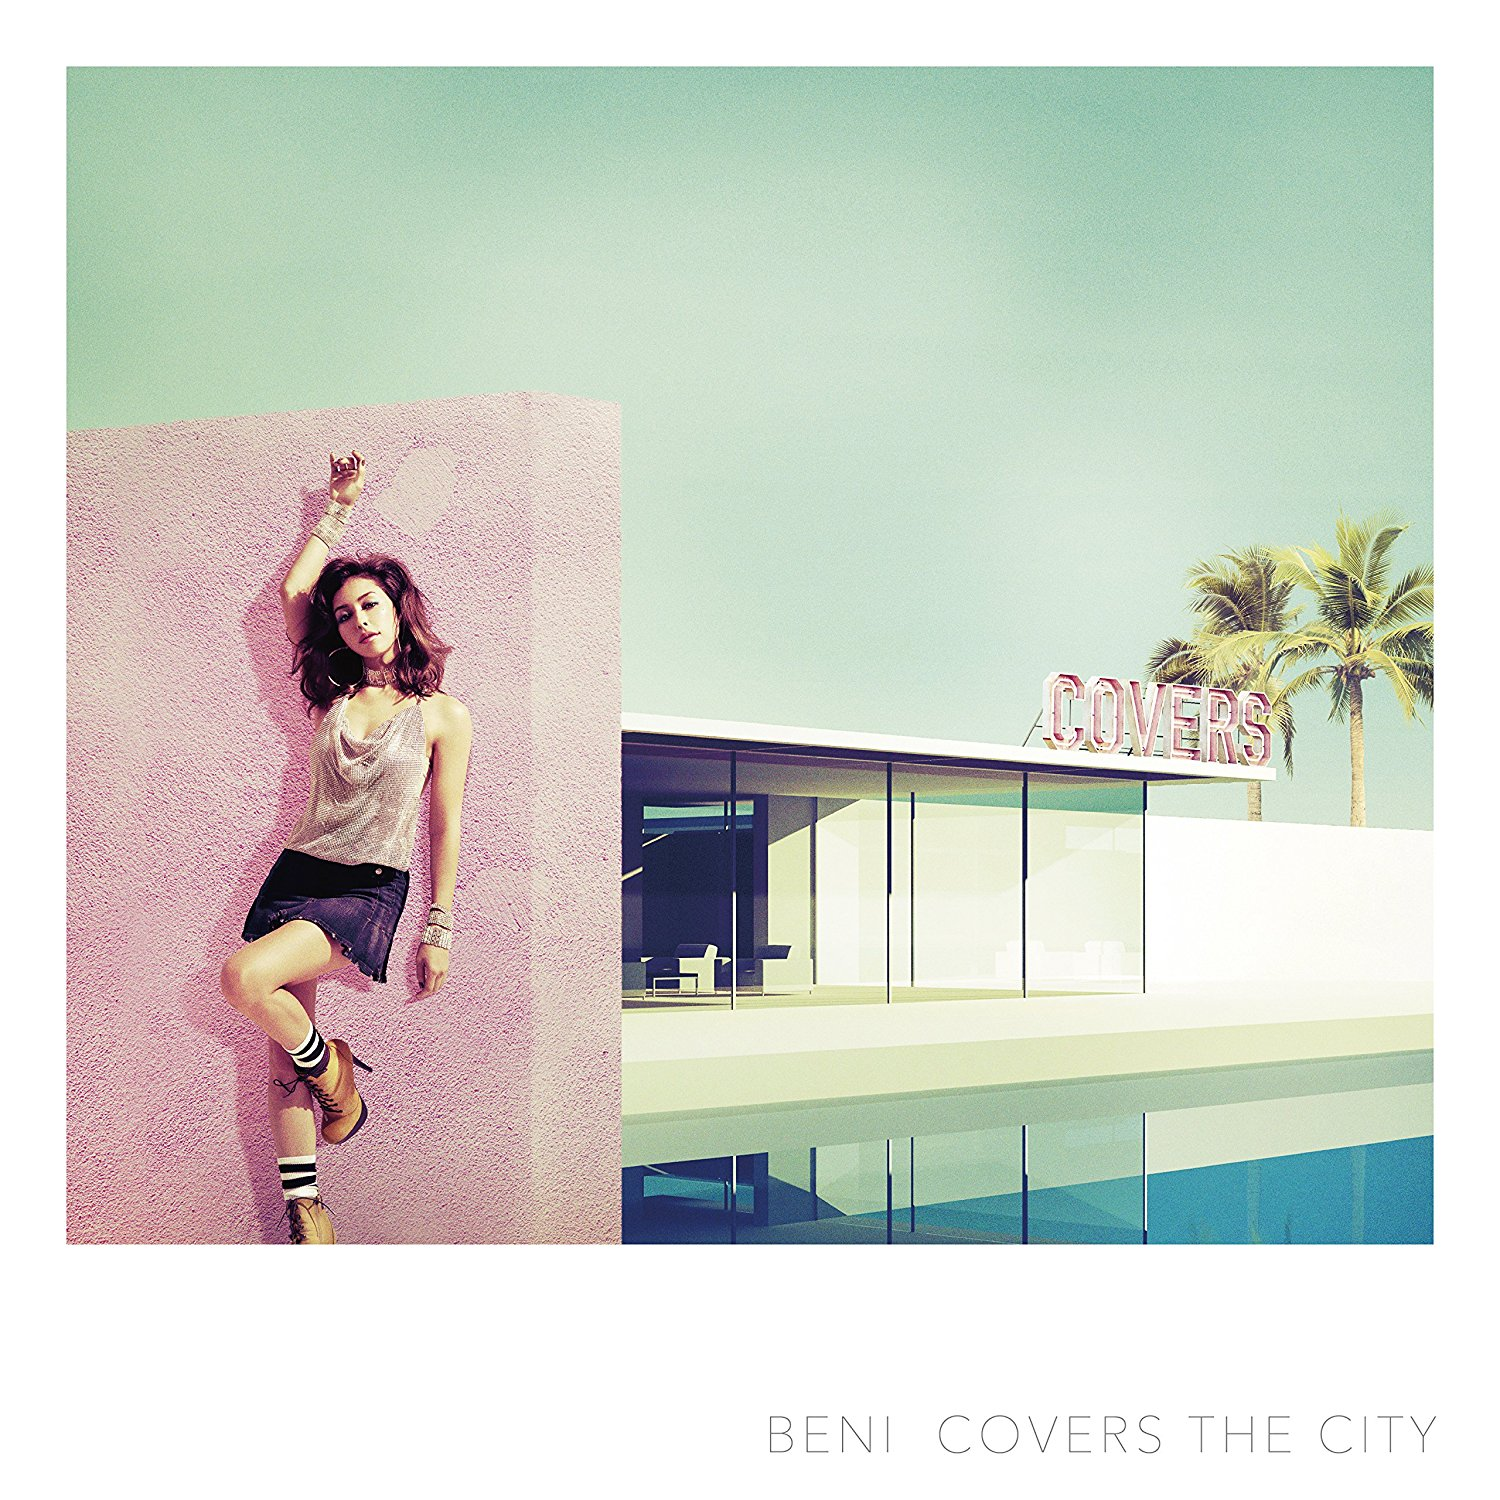 20170914.0417.2 BENI - Covers the City (web edition) (M4A) cover 2.jpg